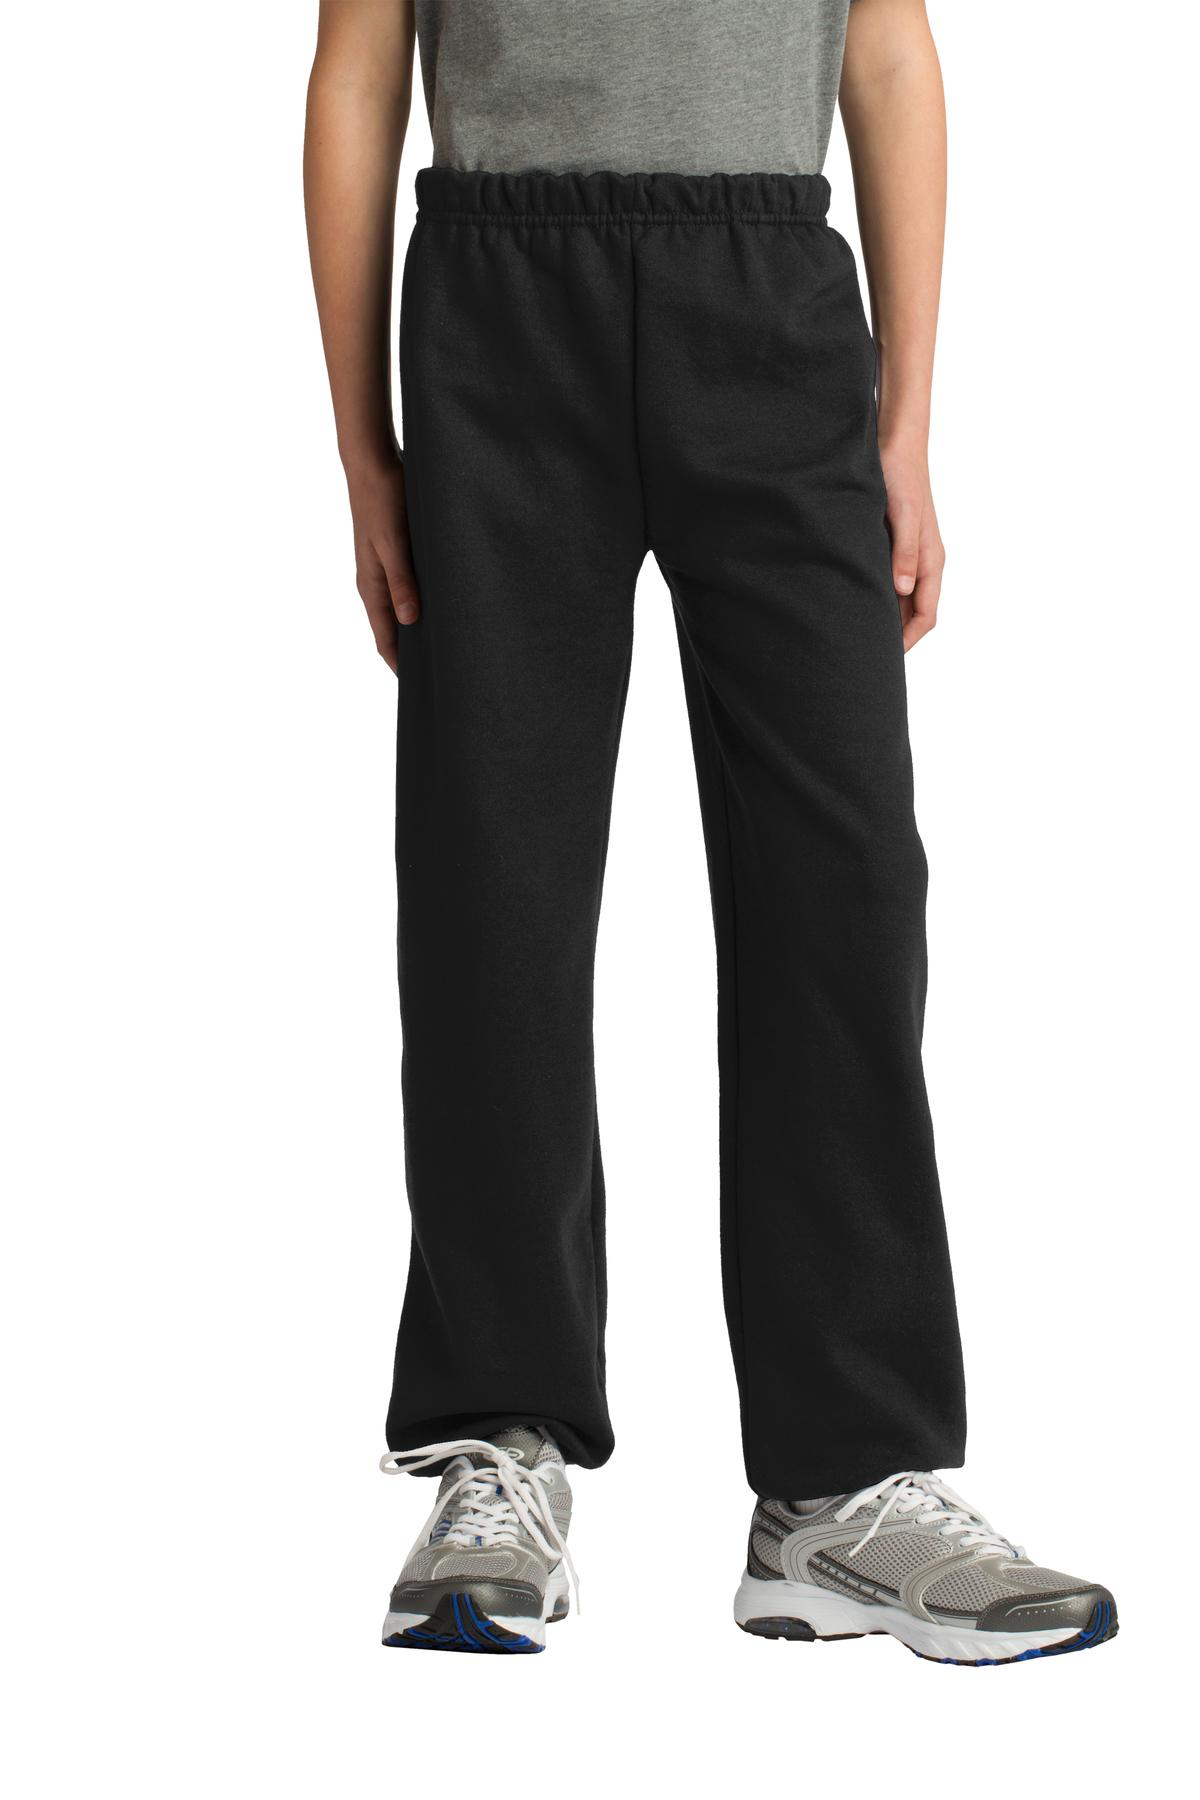 Gildan ®  Youth Heavy Blend™ Sweatpant. 18200B - Black